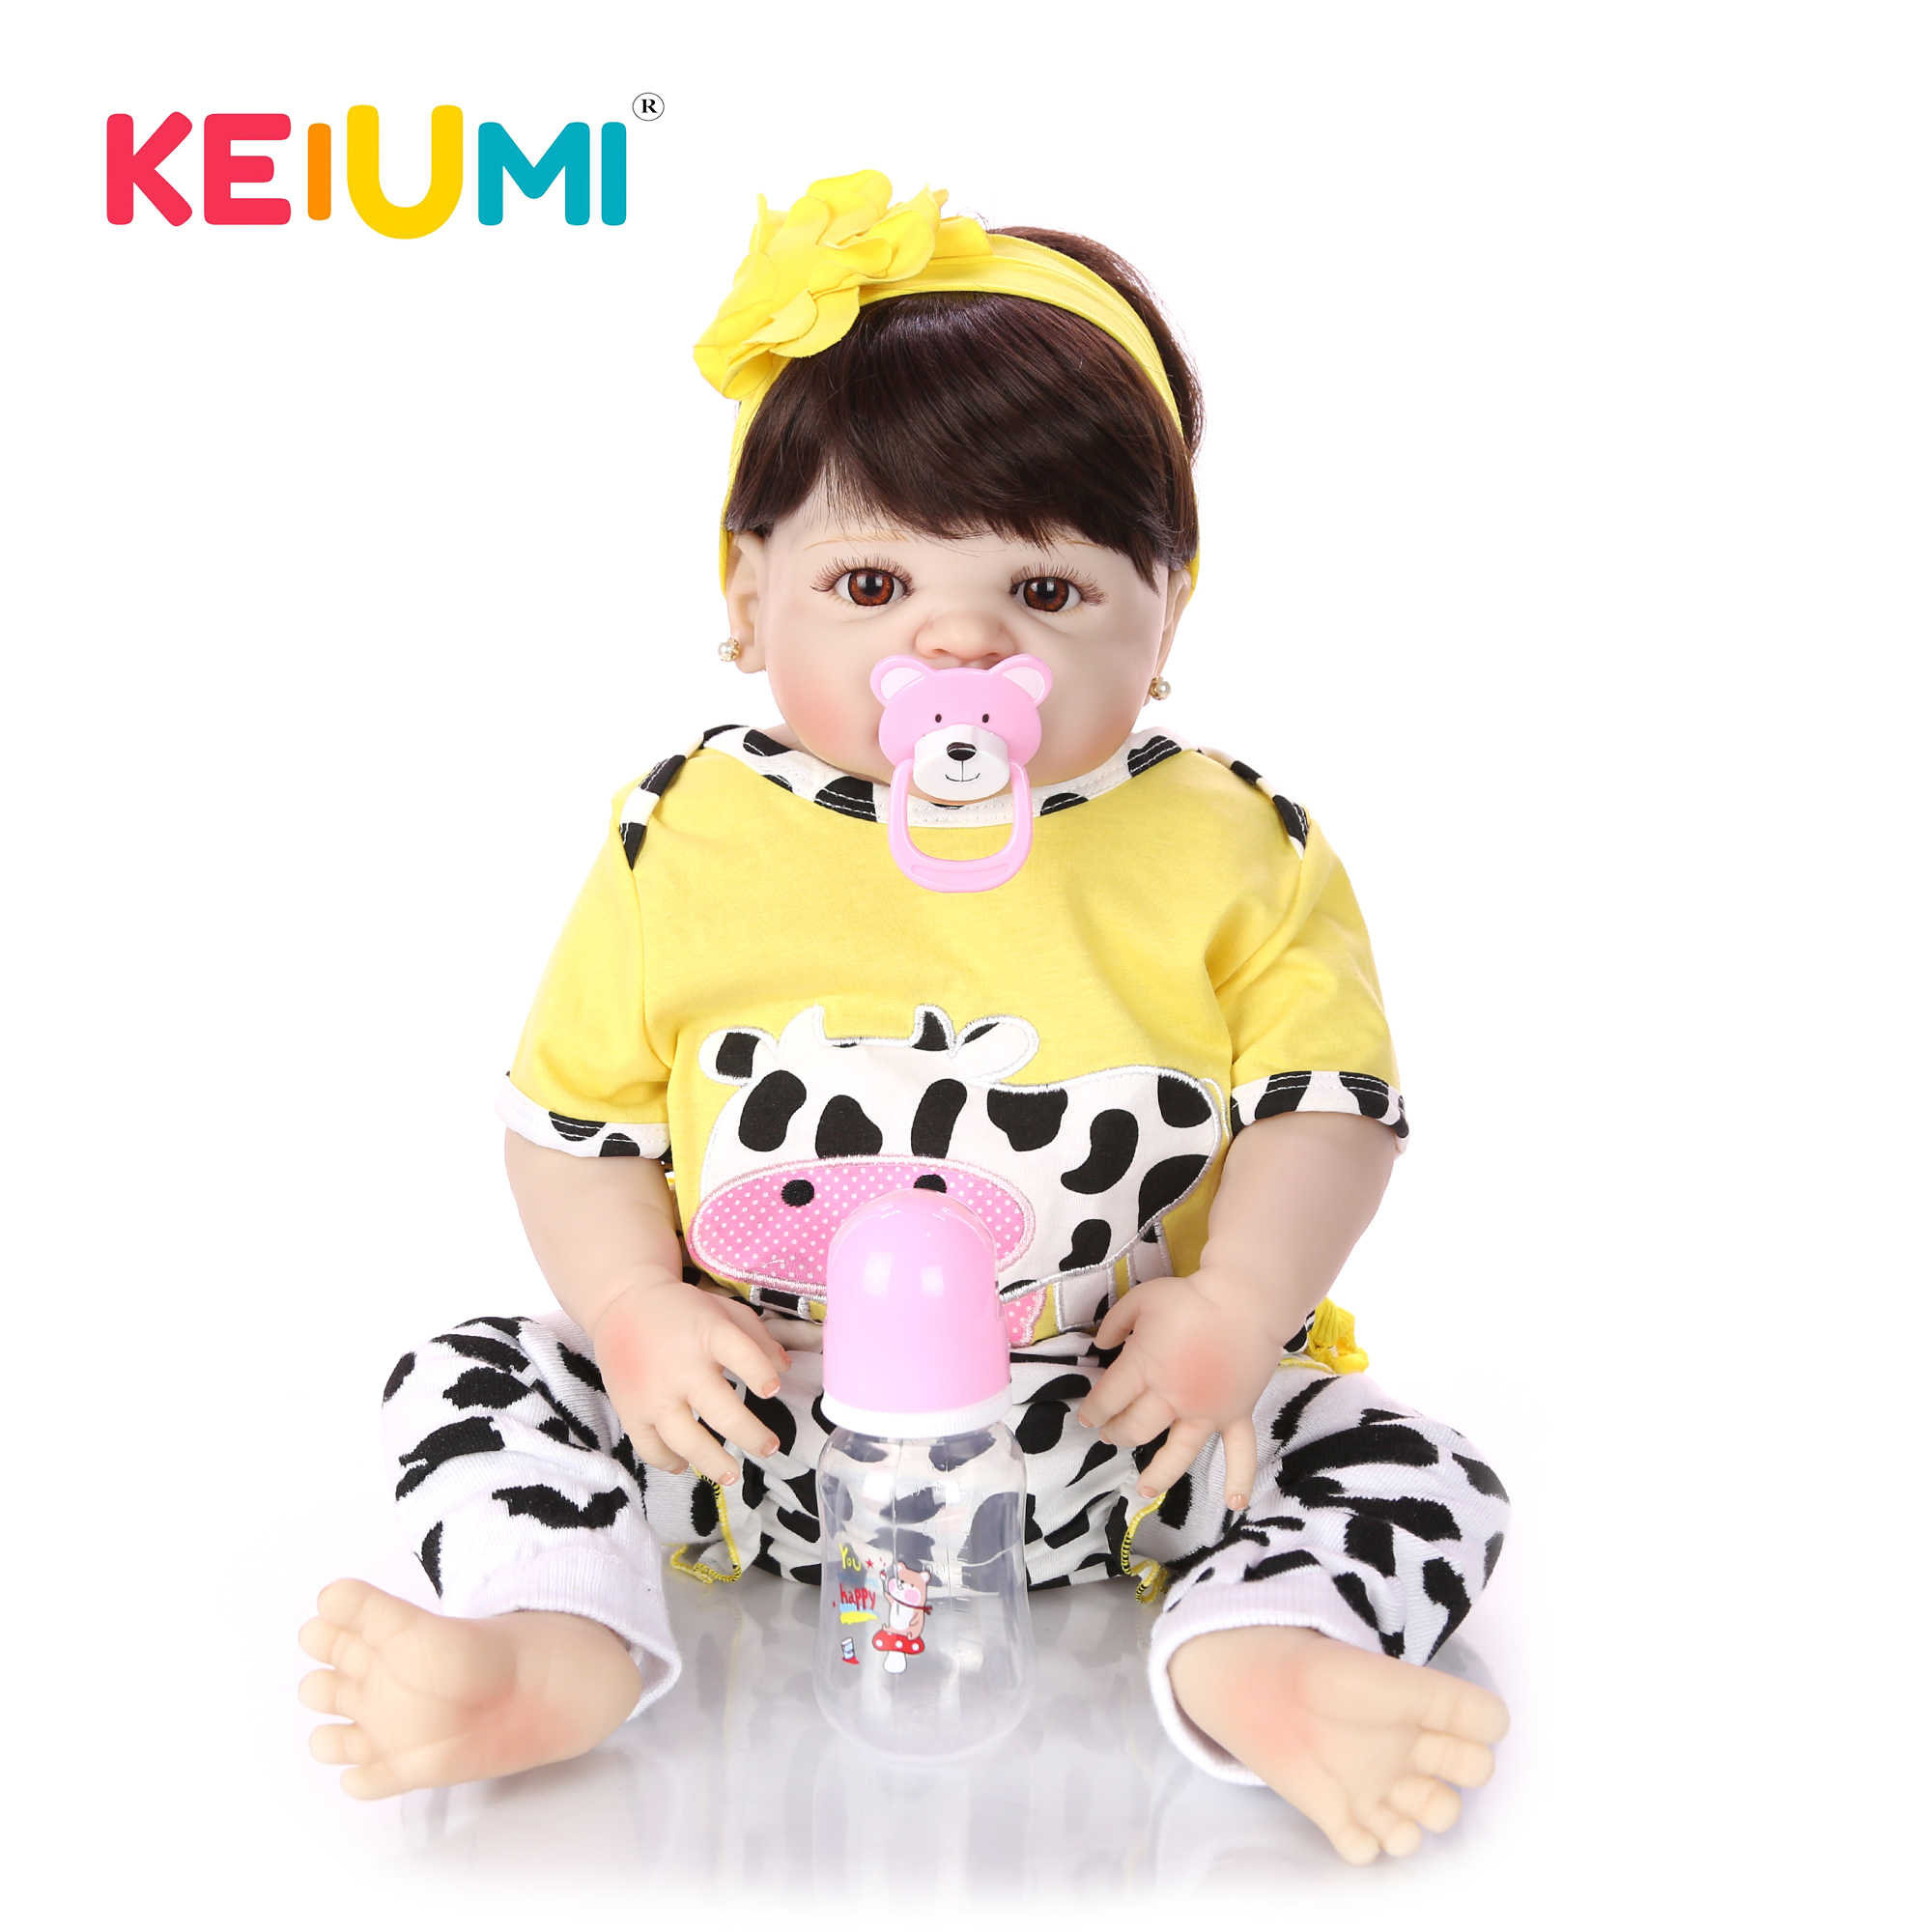 Collectible 23'' 57 cm Reborn Baby Dolls Full Vinyl Body So Truly Like Girl Alive Doll In Brazil Toddler bebe Toy Birthday Gifts